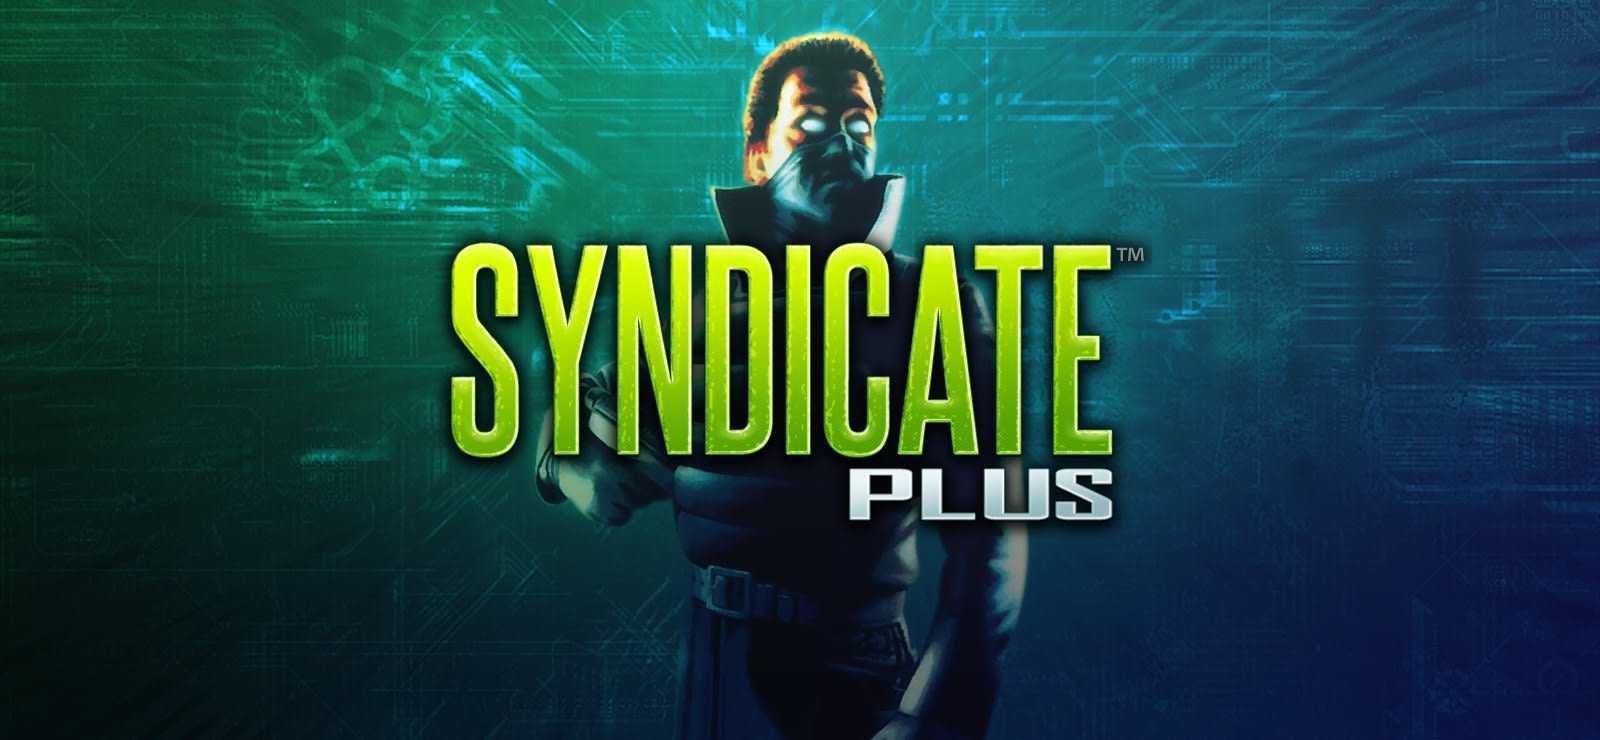 Syndicate Plus varies-with-device